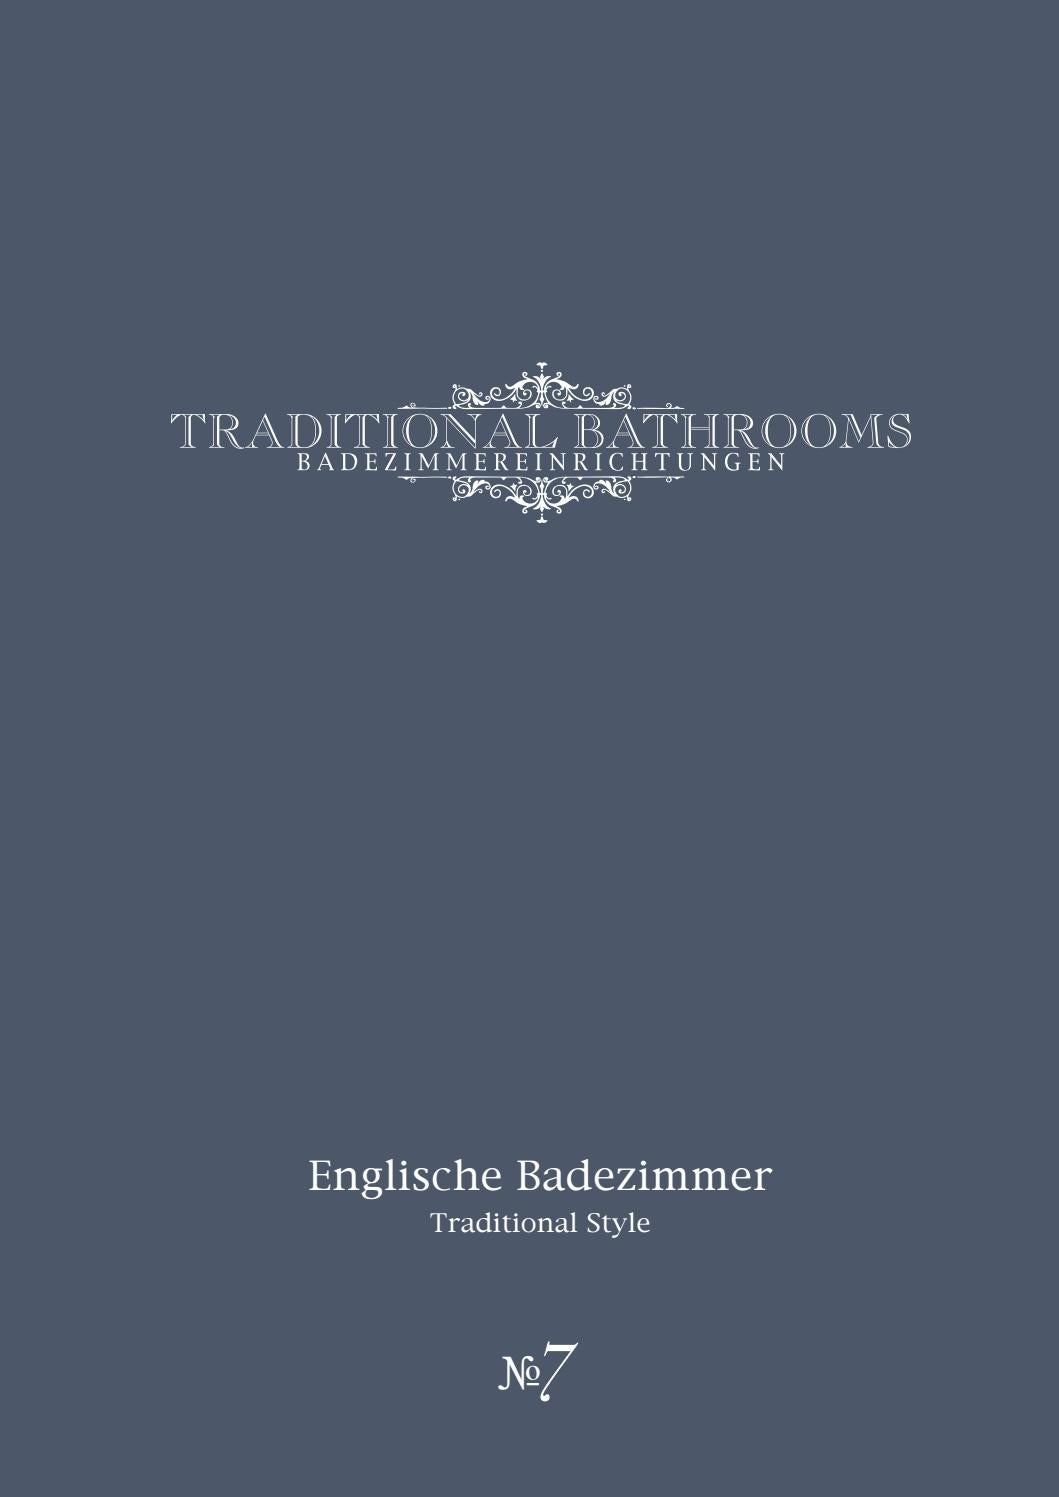 Englische Badezimmer Edition 7 By Traditional Bathrooms Issuu